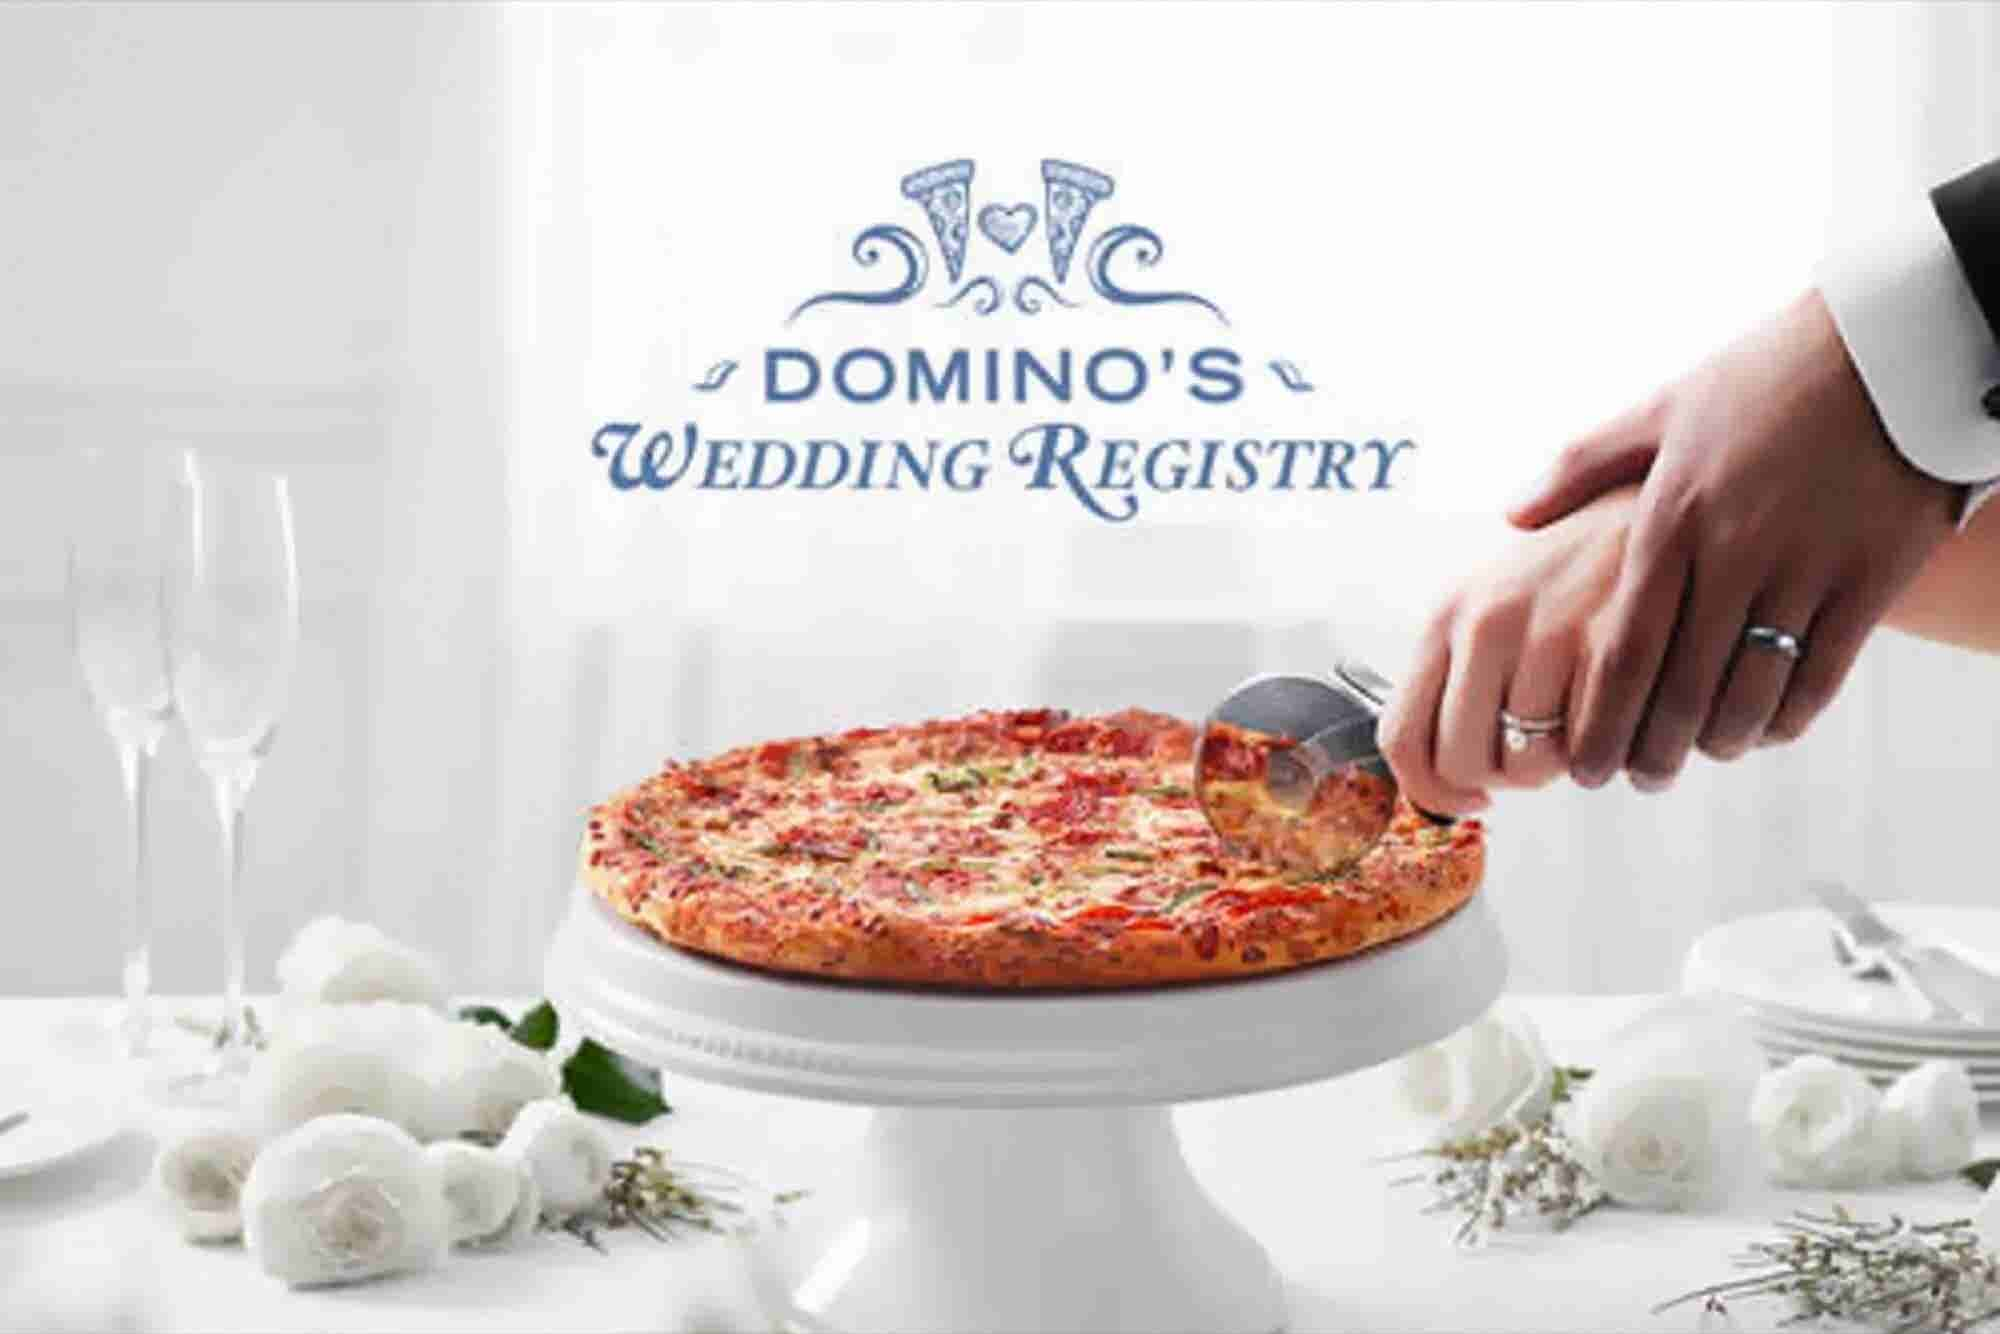 Domino's Now Has a Wedding Registry, Because You Know, People Love Piz...